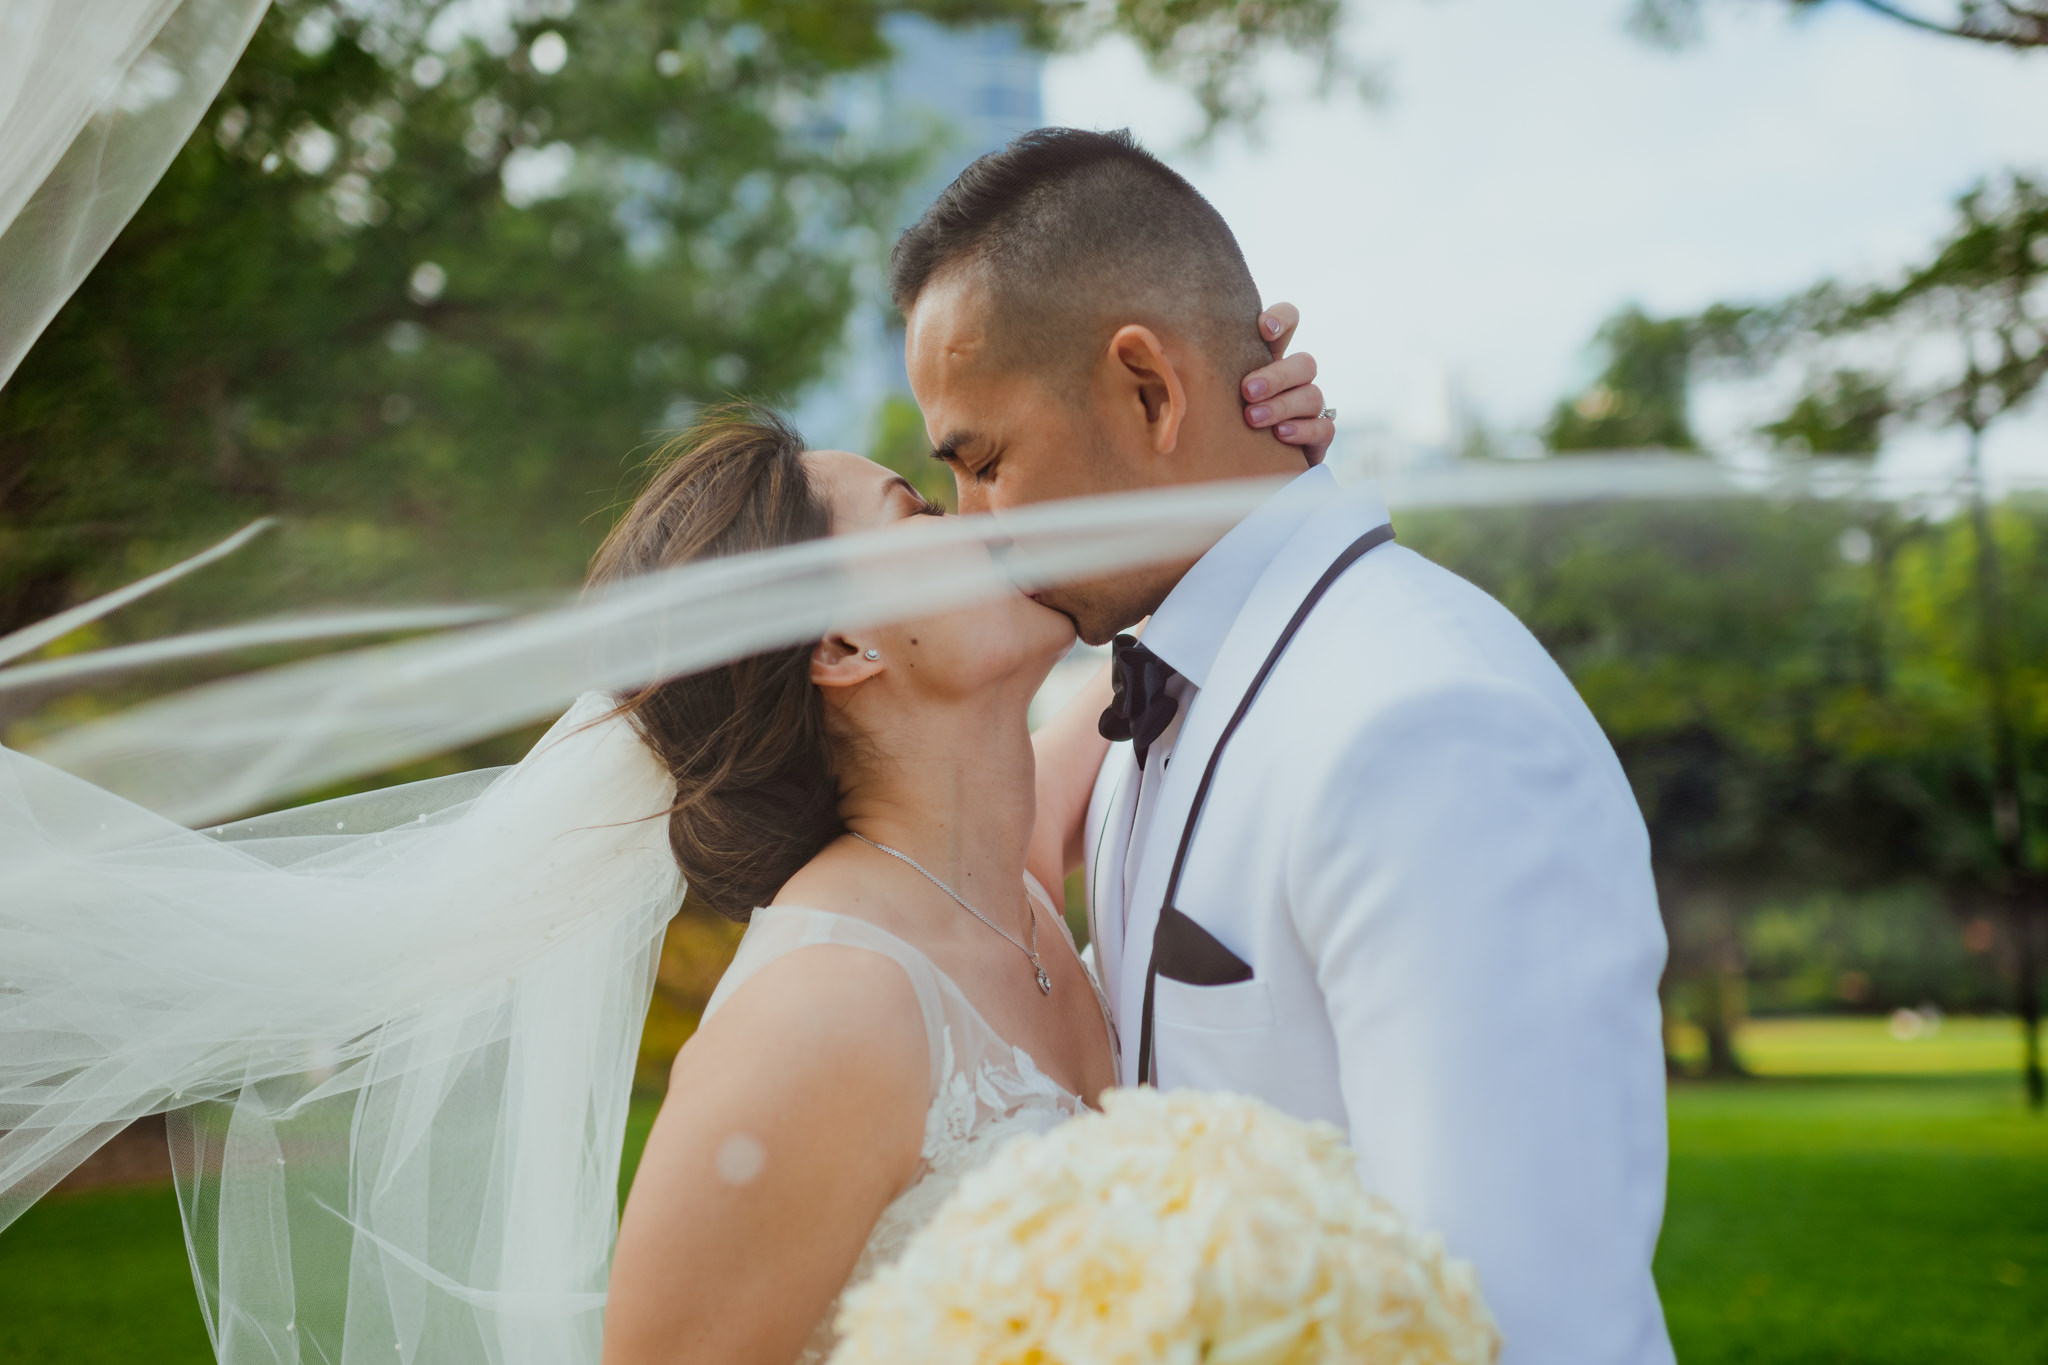 An Asian couple kiss as the bride's veil flows in the wind in front of the camera